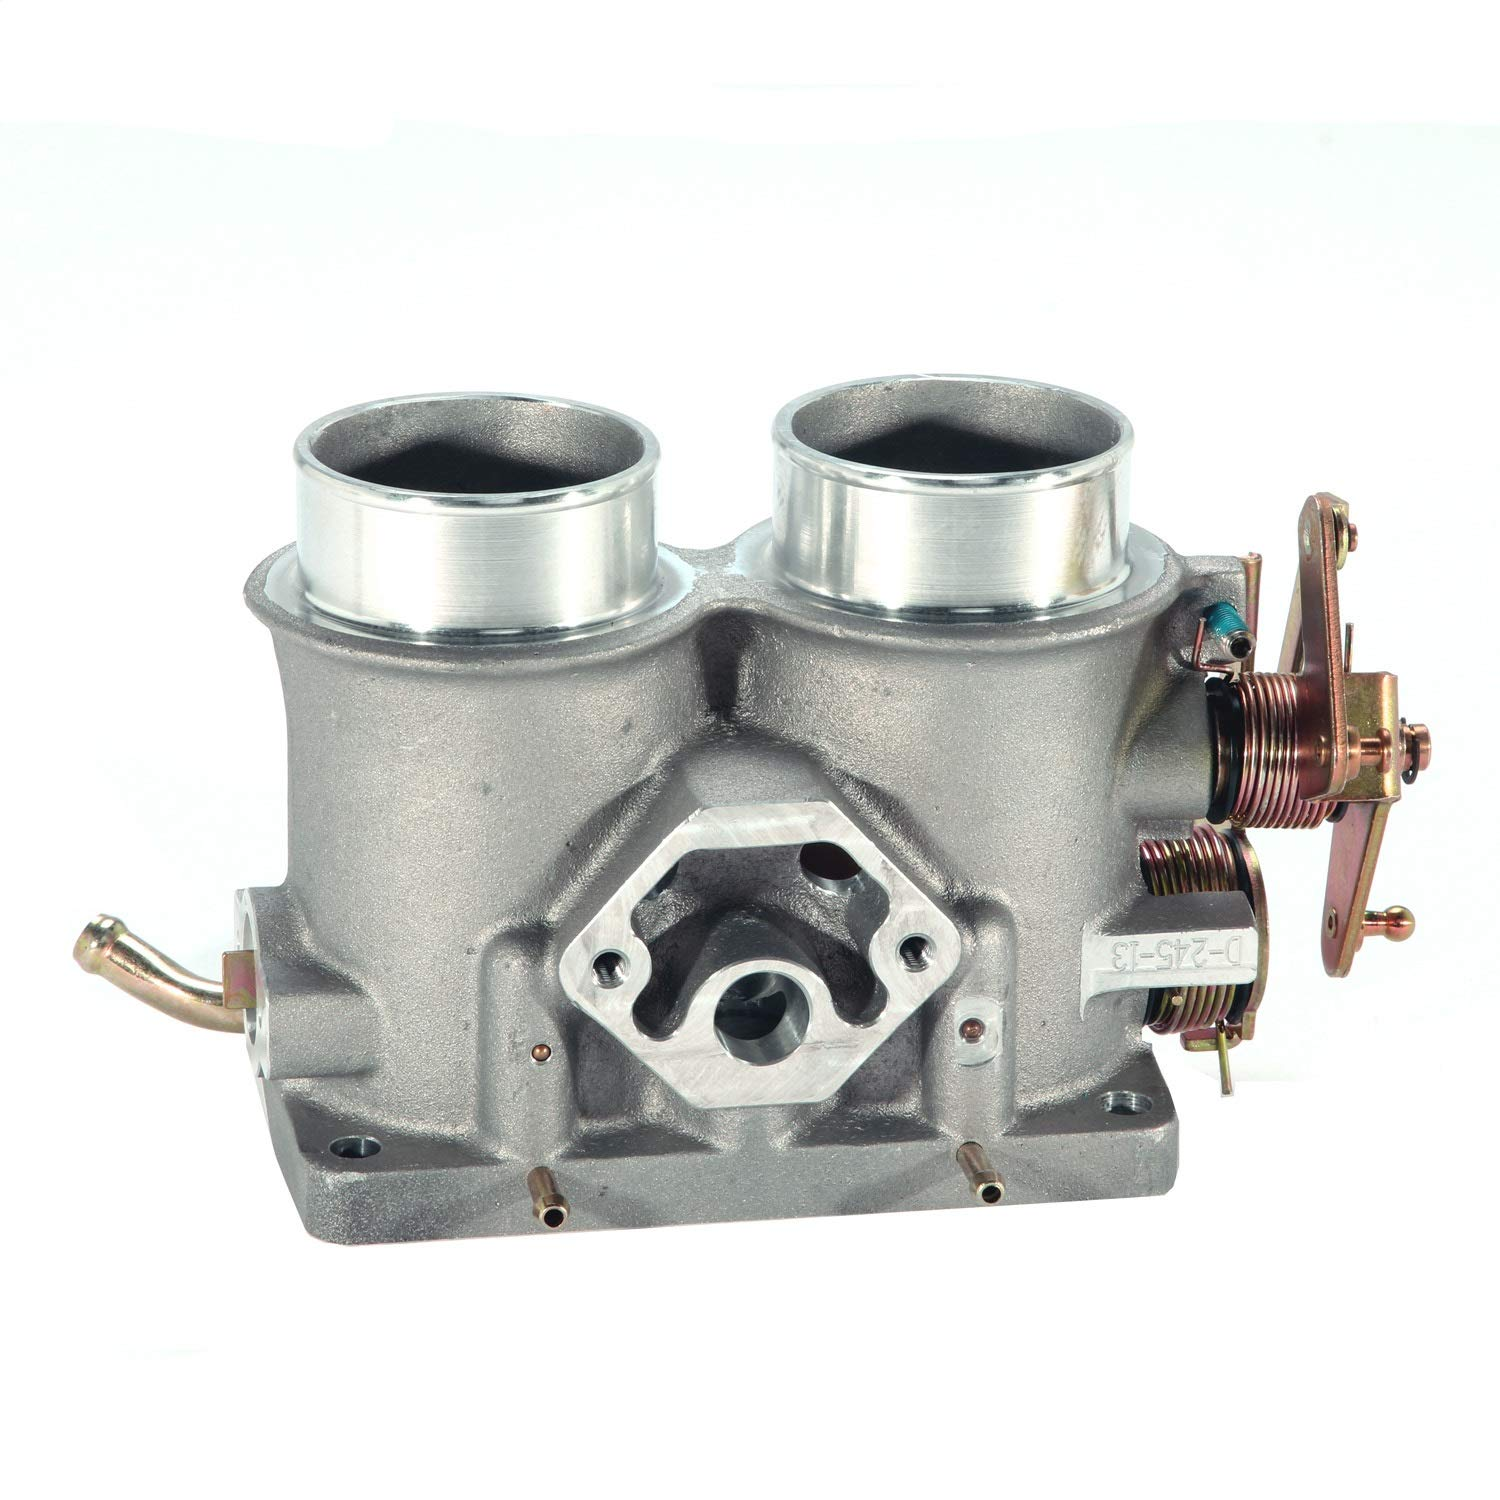 BBK Performance 3501 Twin 56mm Throttle Body - High Flow Power Plus Series For Ford F Series Truck And SUV 302, 351 by BBK Performance